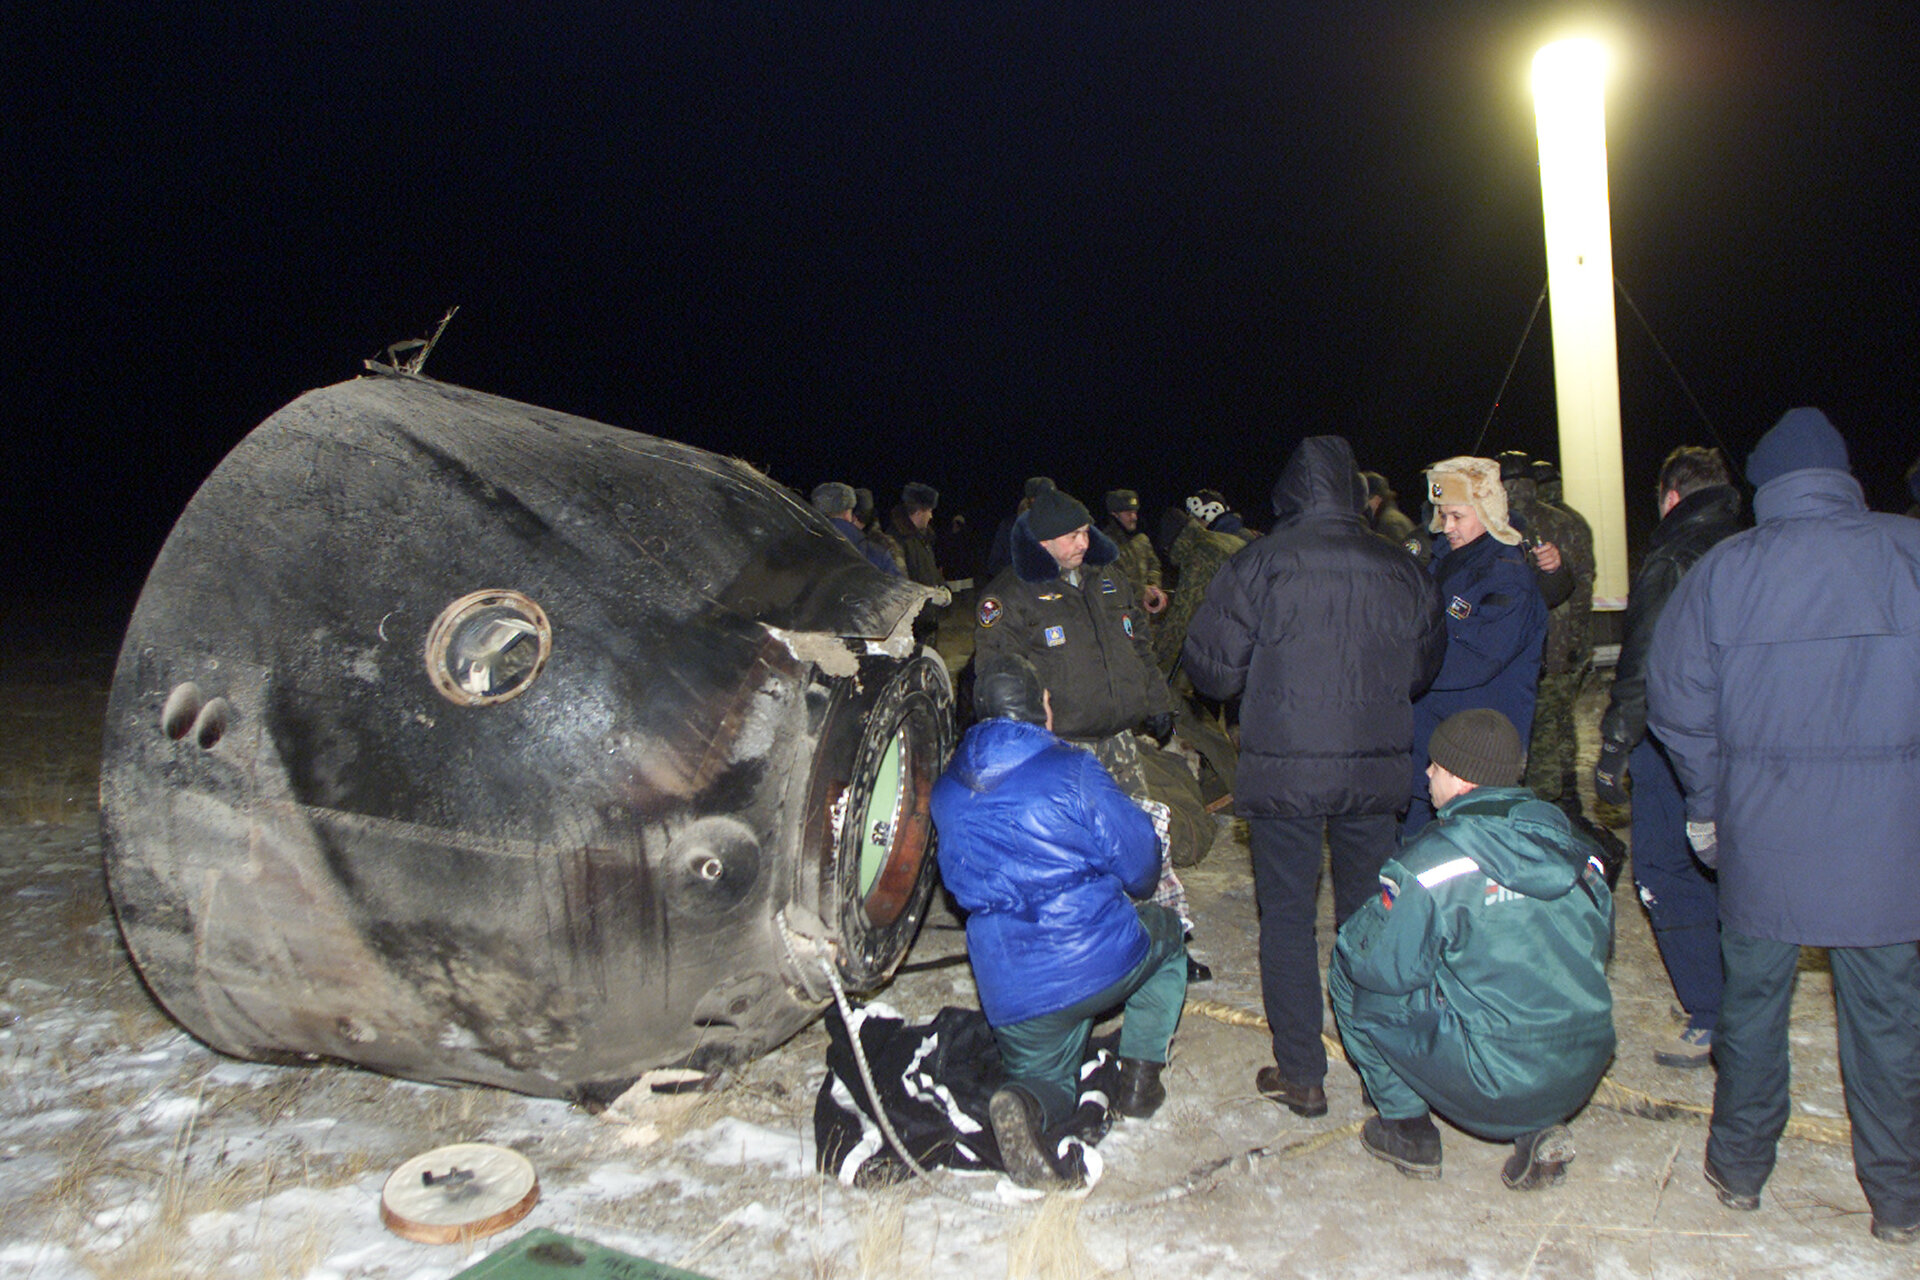 Odissea Mission crew members land in Kazakhstan